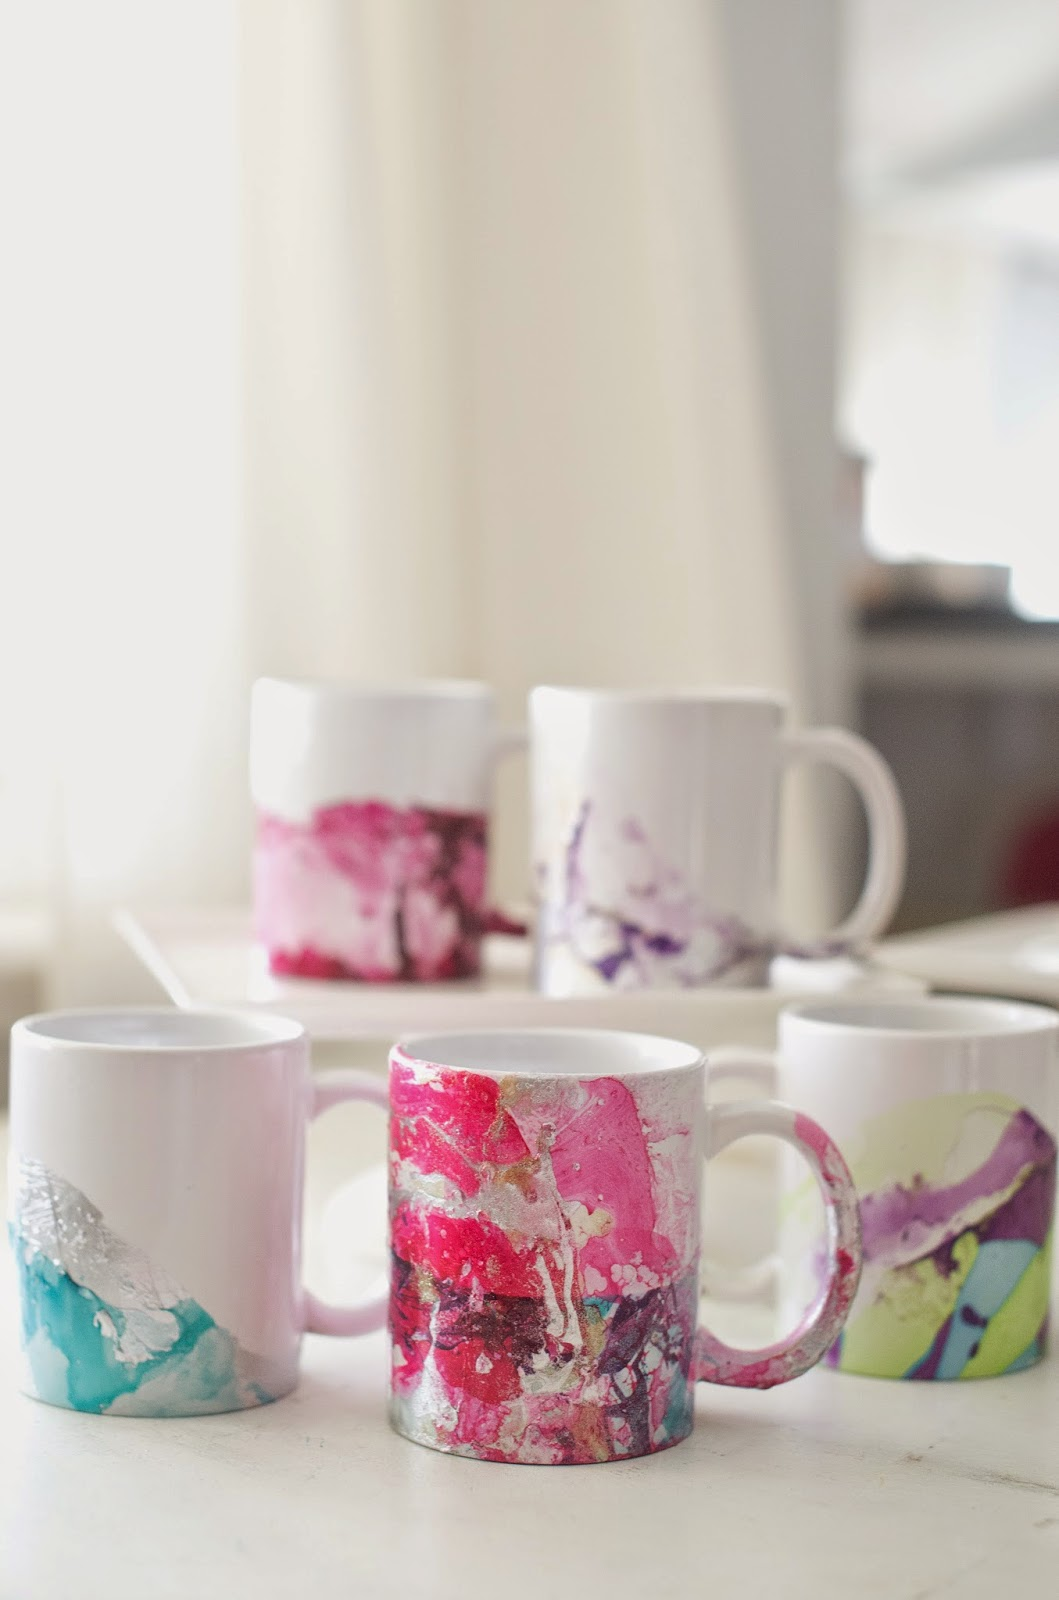 Diy marbled coffee mugs using nail polish